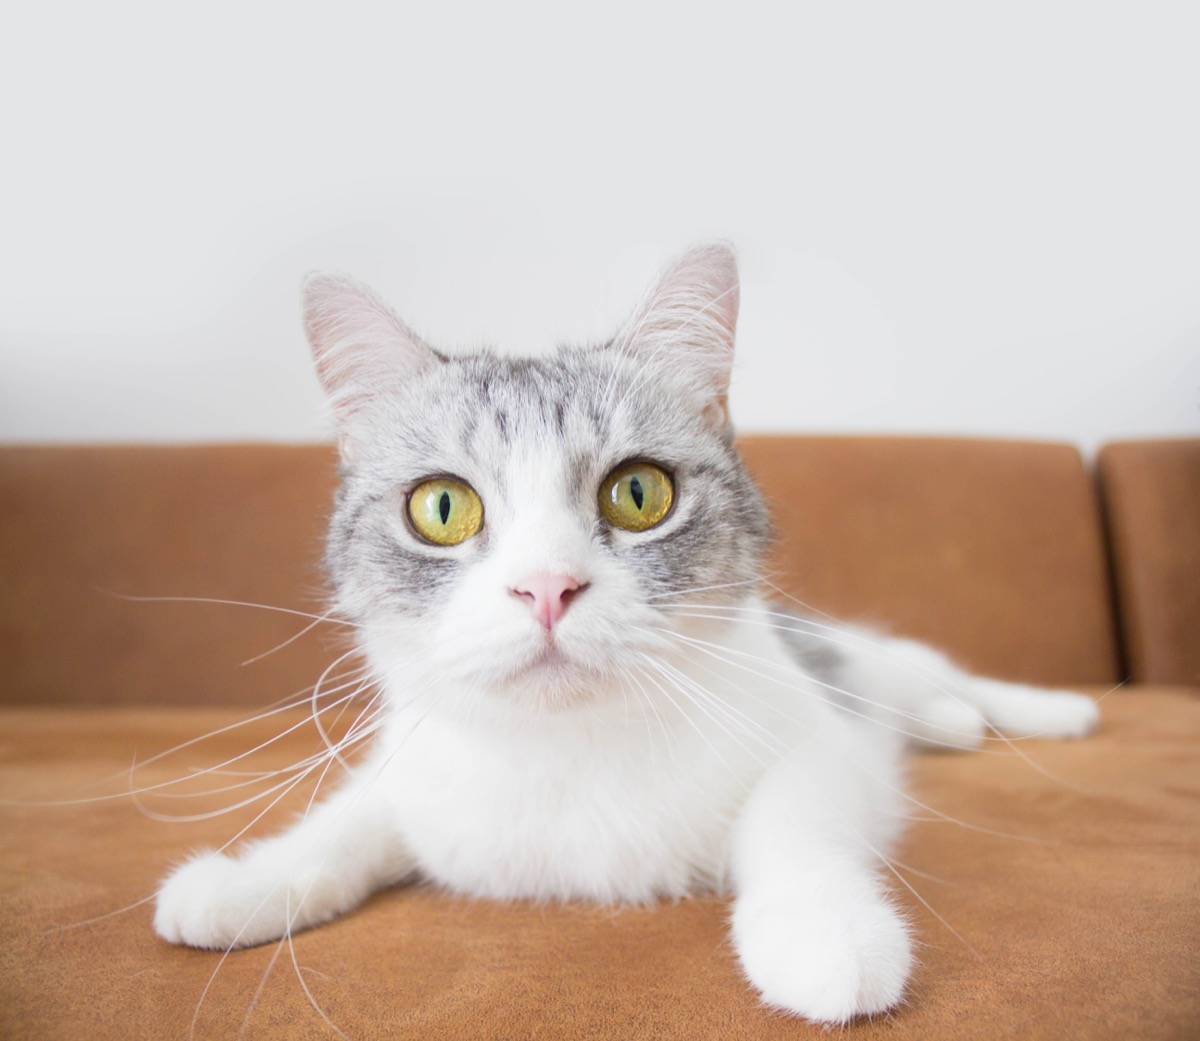 White and grey cat on couch